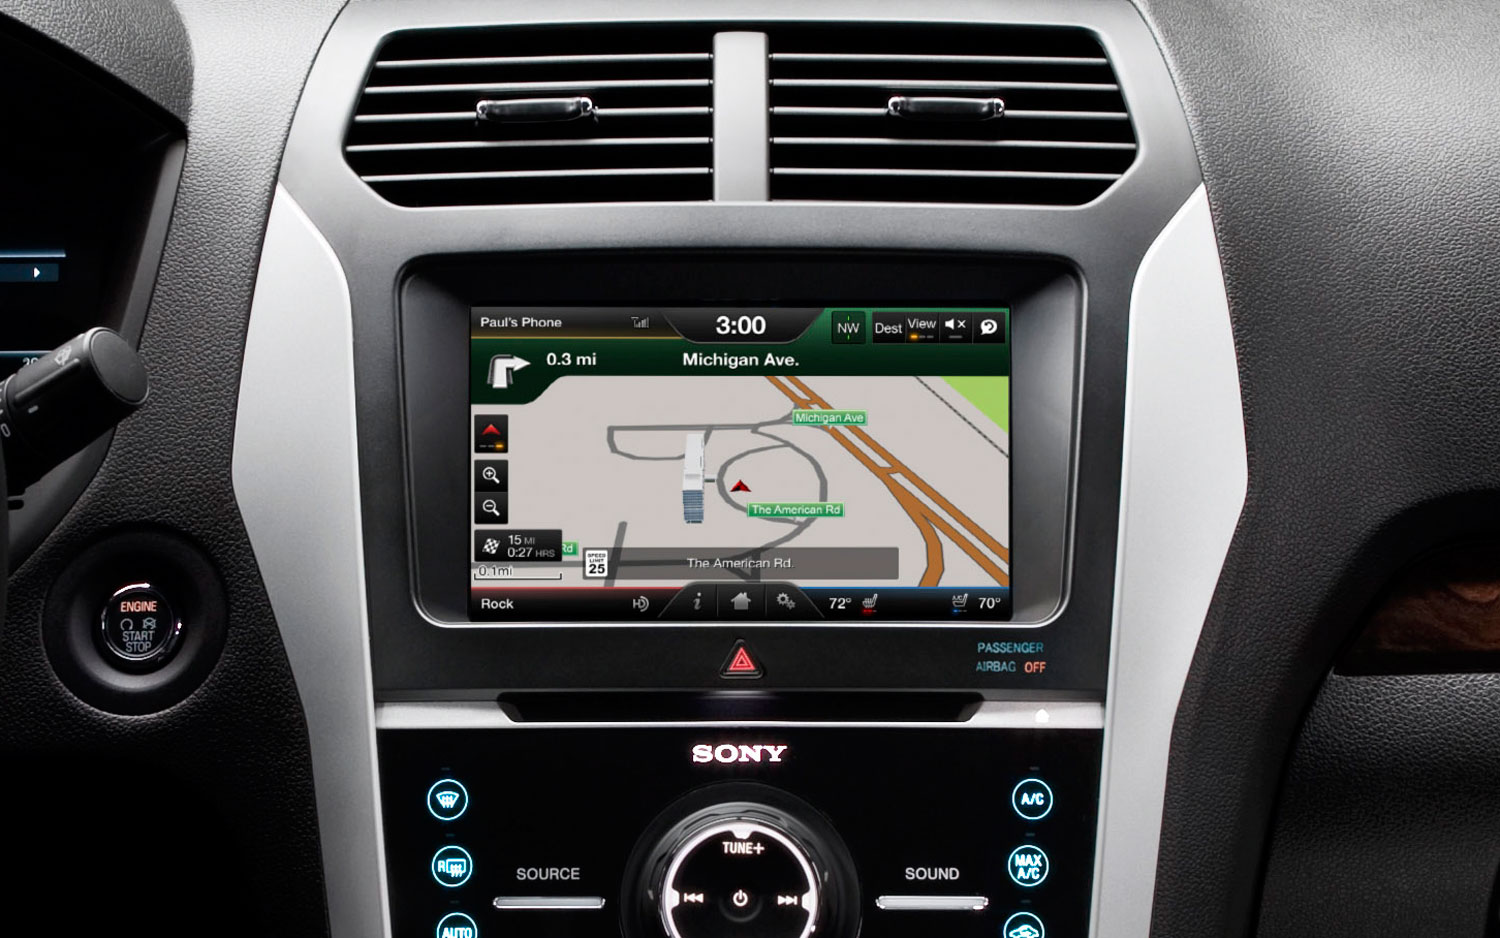 2012 Ford Explorer MyFordTouch Navigation Map